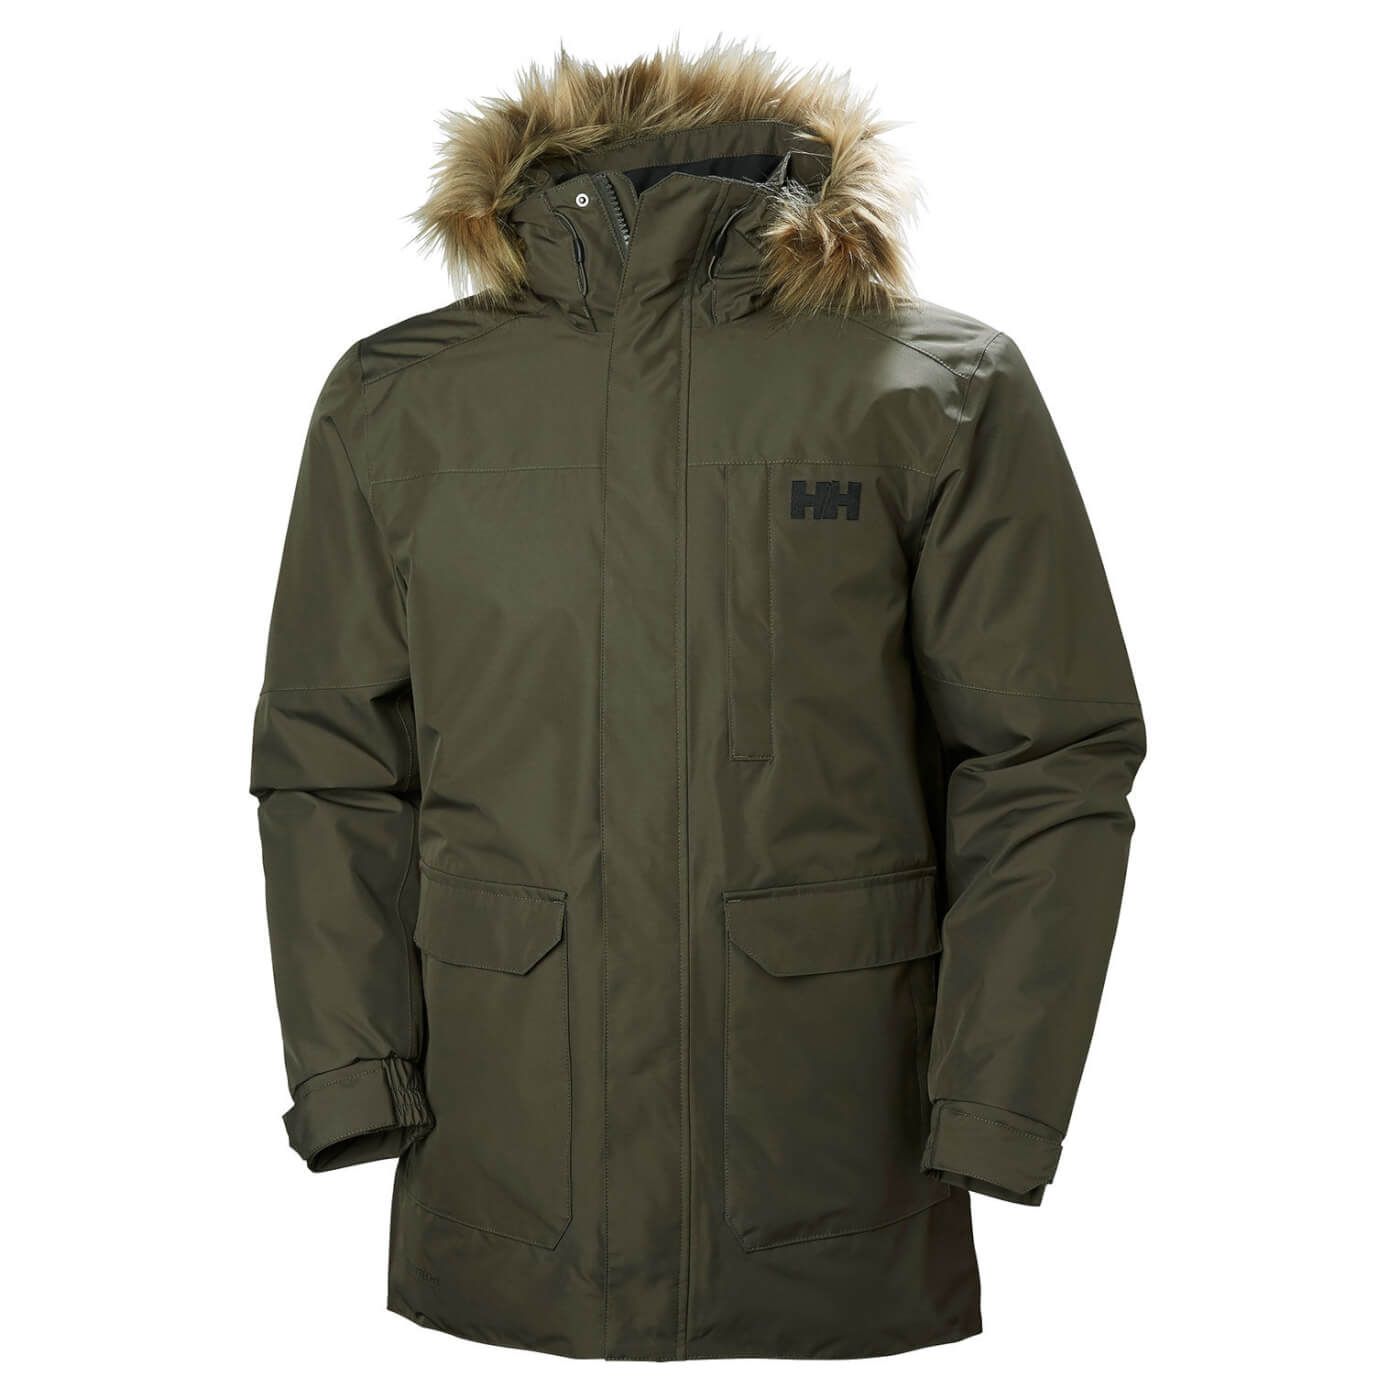 2fa3980c2 These Winter Jackets Have You Covered, Without Down | PETA